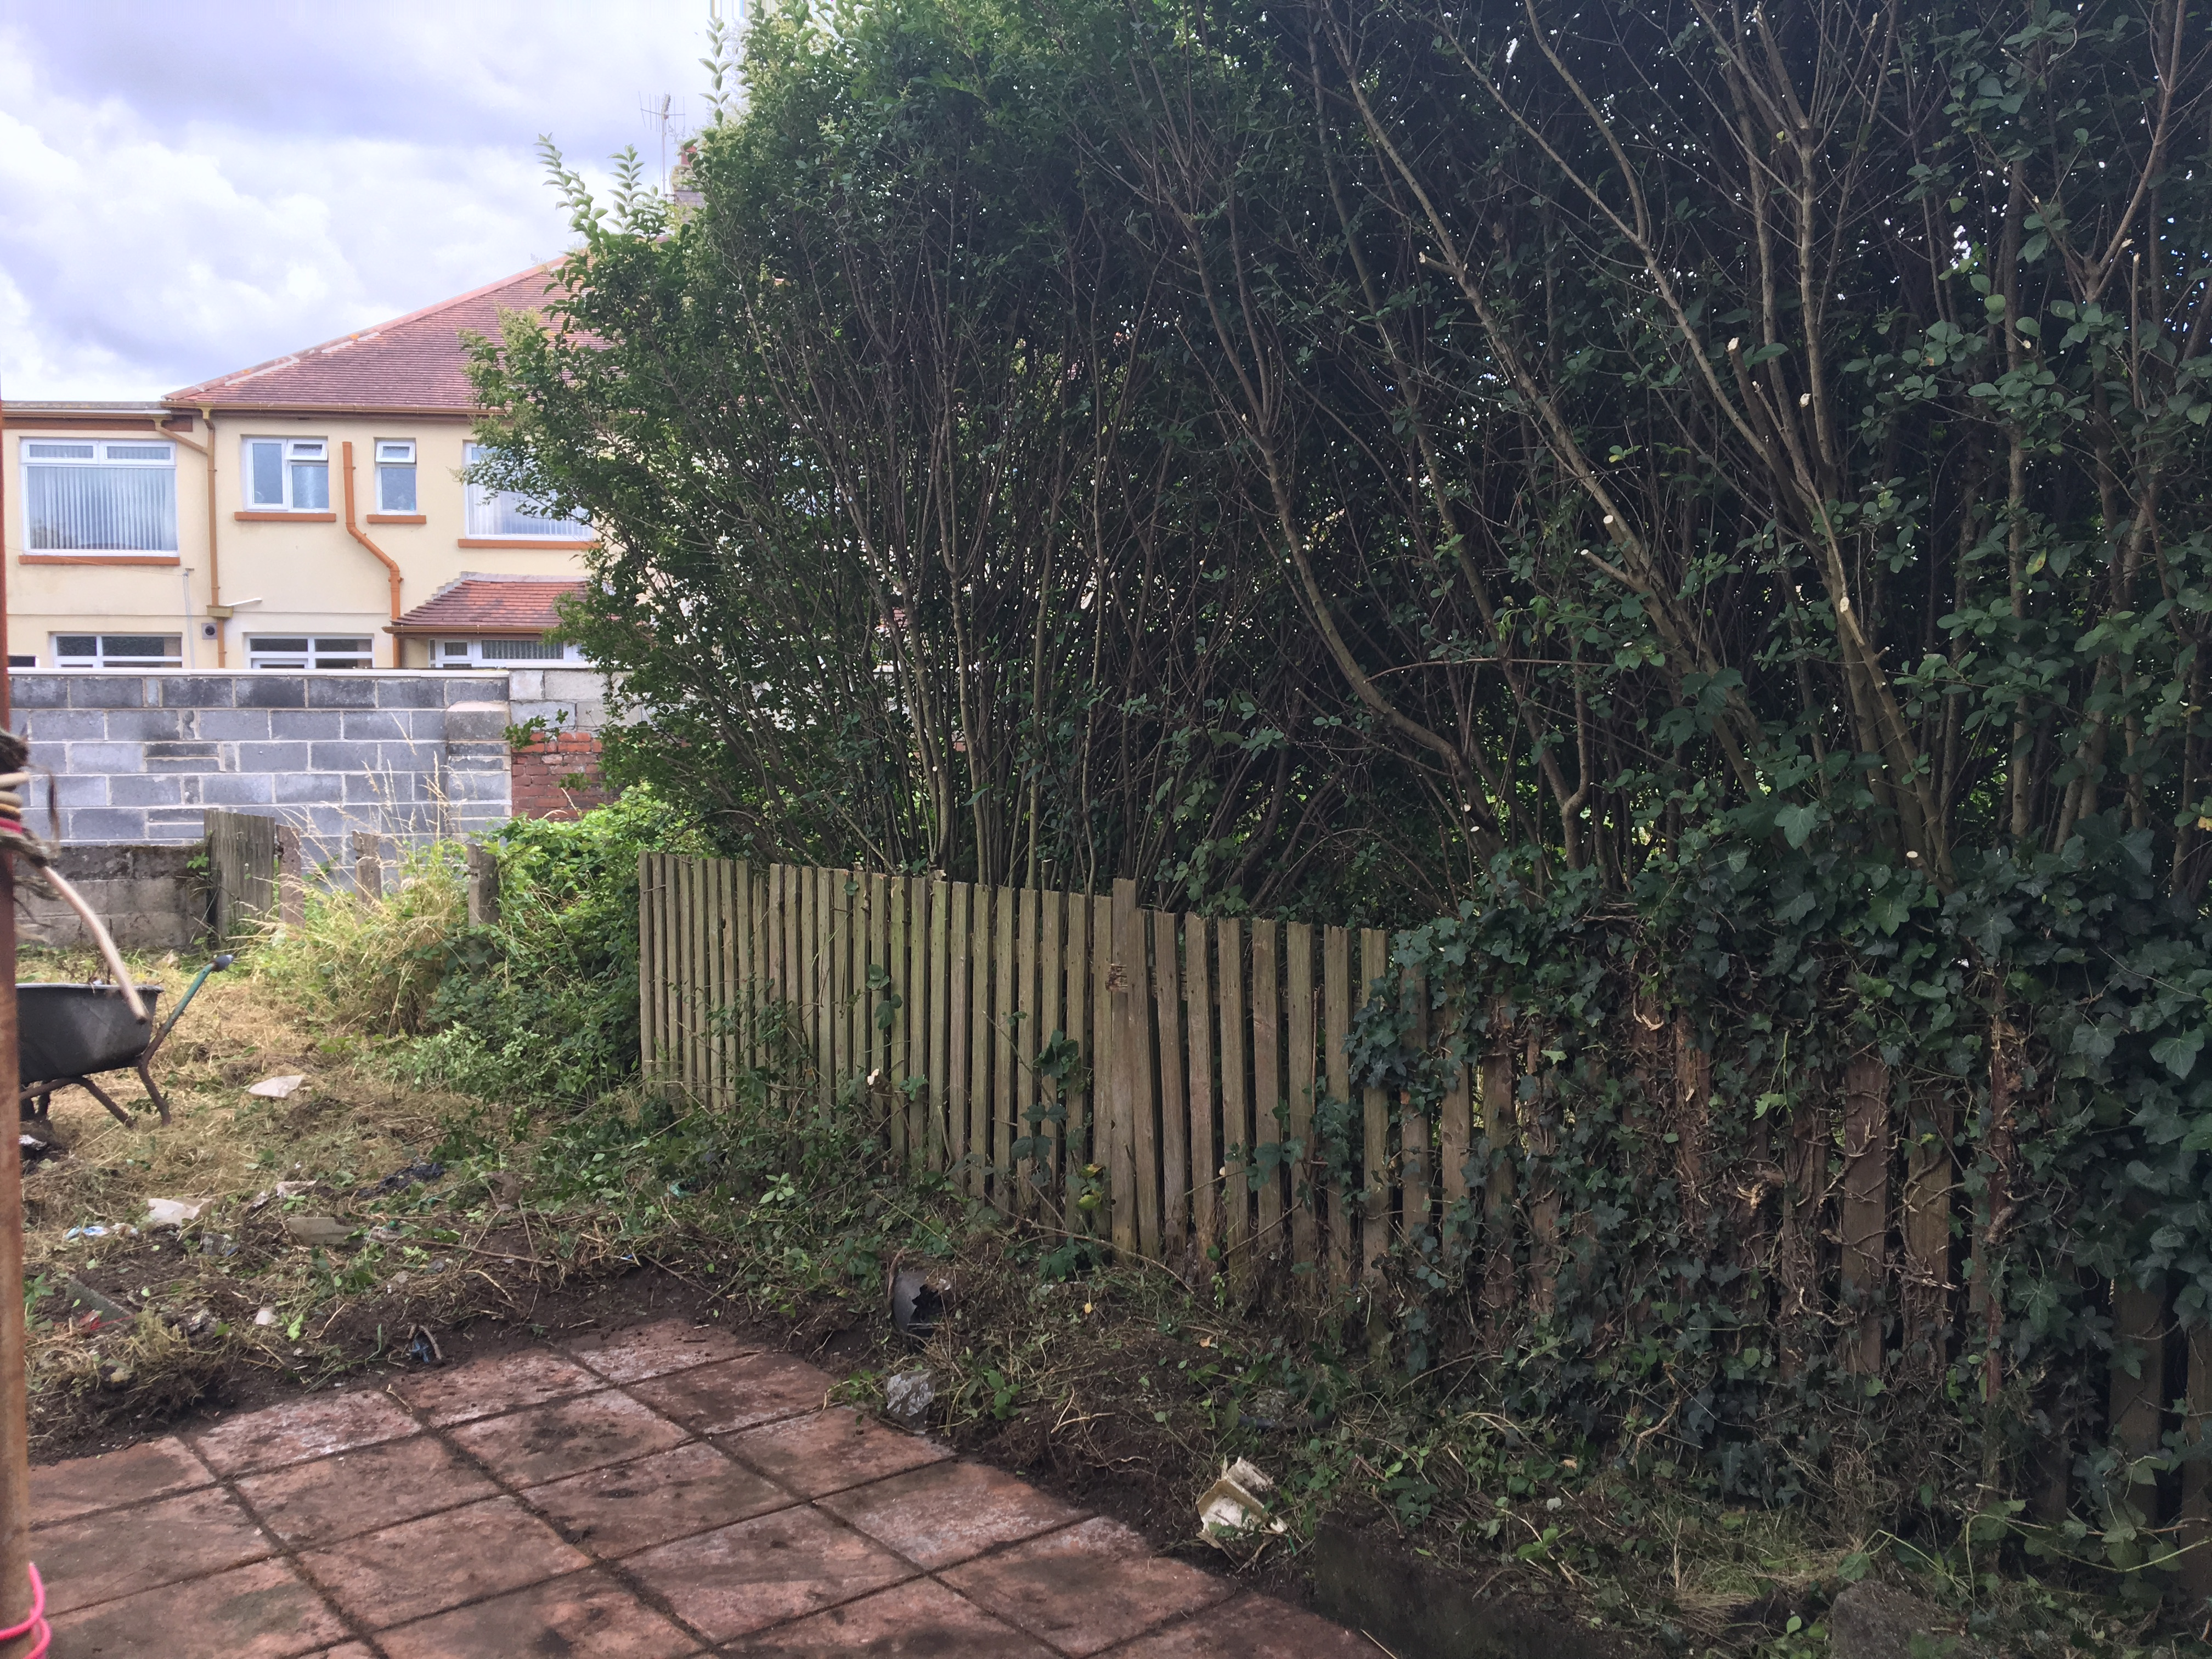 Neighbouring property bushes CutBack